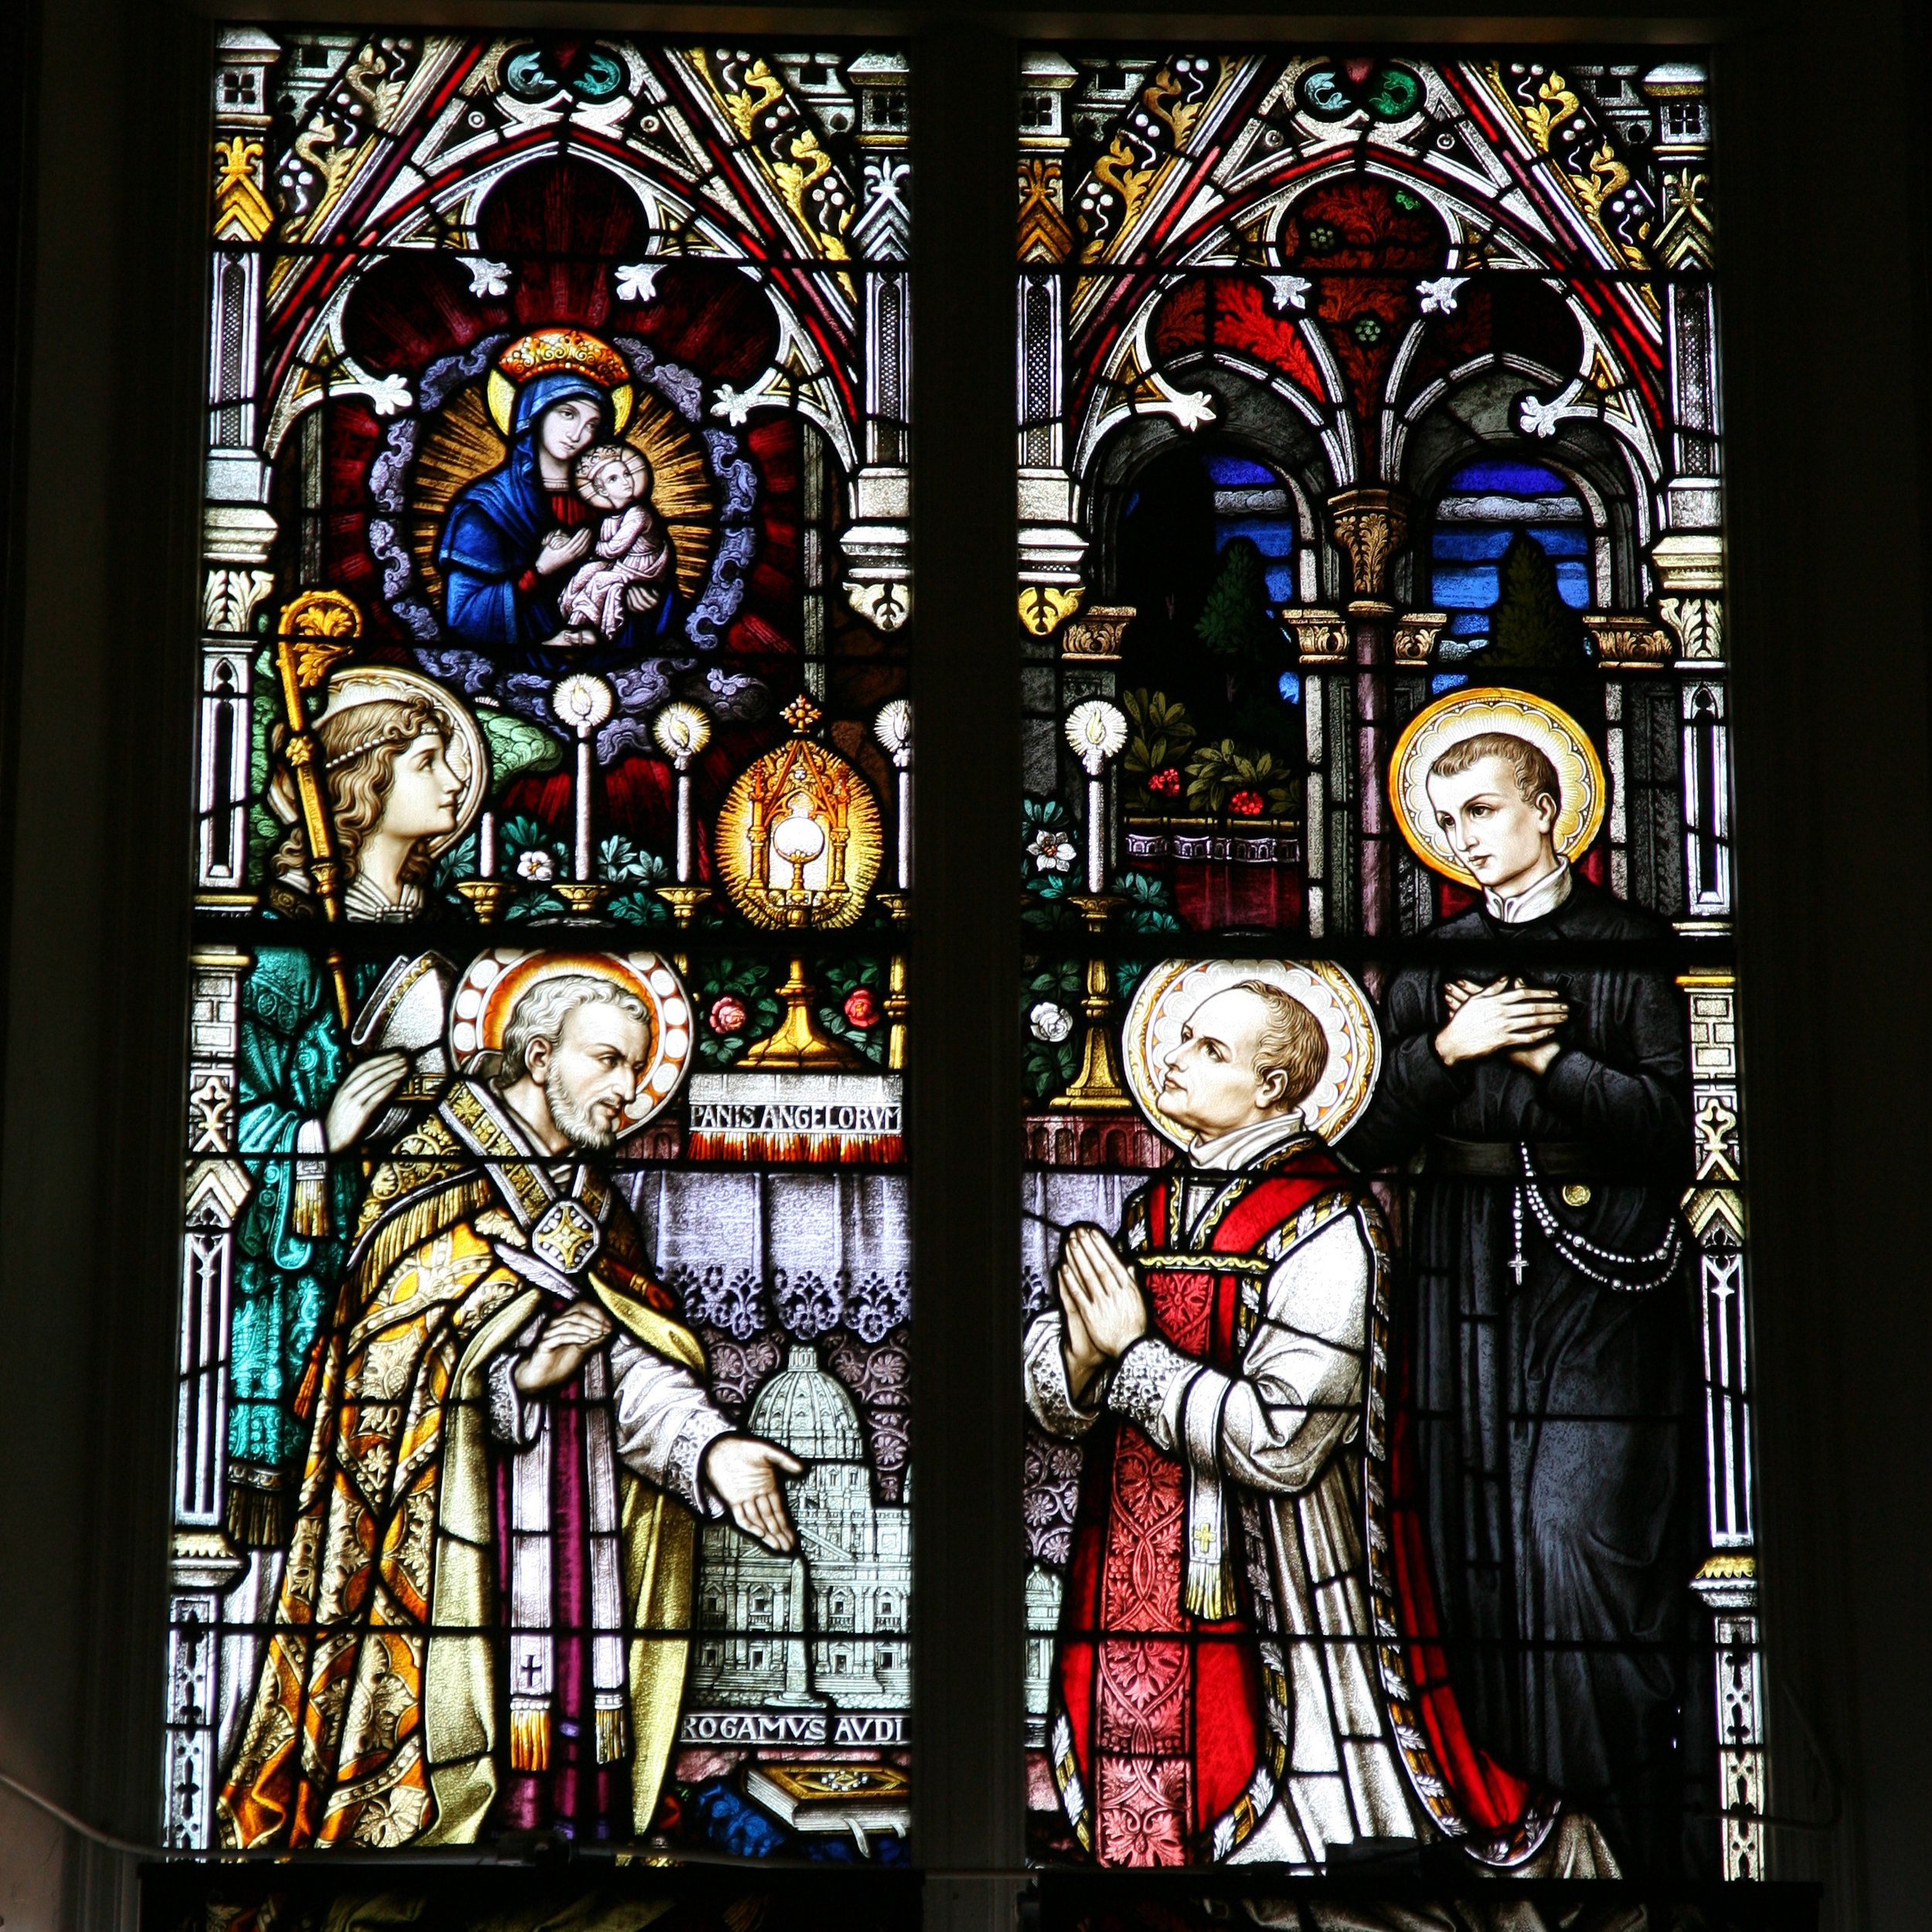 About Redemptorists - The Redemptorists are a religious congregation of Catholic priests and brothers founded in southern Italy in 1732 by St. Alphonsus Liguori. One hundred years after its formation, six Redemptorists brought the ministry to America. In 1888 at the request of Bishop Henry Richter, the two Redemptorist priests arrived in Grand Rapids to staff the newly established St. Alphonsus Parish. Today, there are over 5,000 Redemptorists preaching in every corner of the globe.Through parish mission preaching events, soup kitchens, senior services, retreats, marriage preparations, food banks, publications, youth outreach and a host of other ministries, the Redemptorists can be found delivering the Gospel message wherever it is needed. Their mission has remained for more than 275 years: To serve the poor and most abandoned.